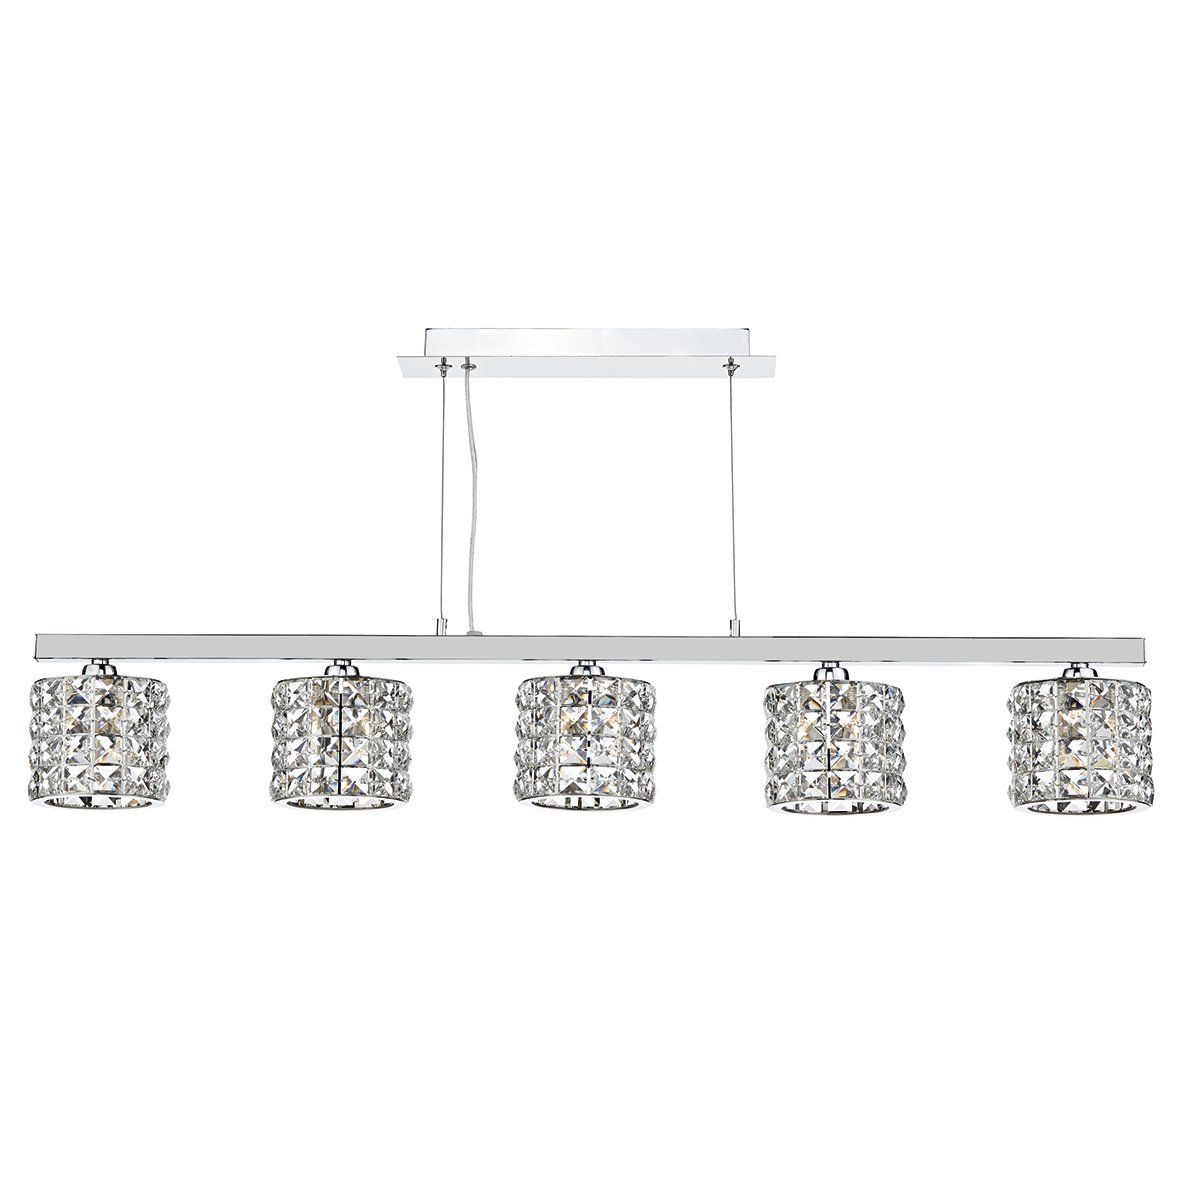 Dar AGN0550 Agneta 5 Light Bar Pendant in Chrome